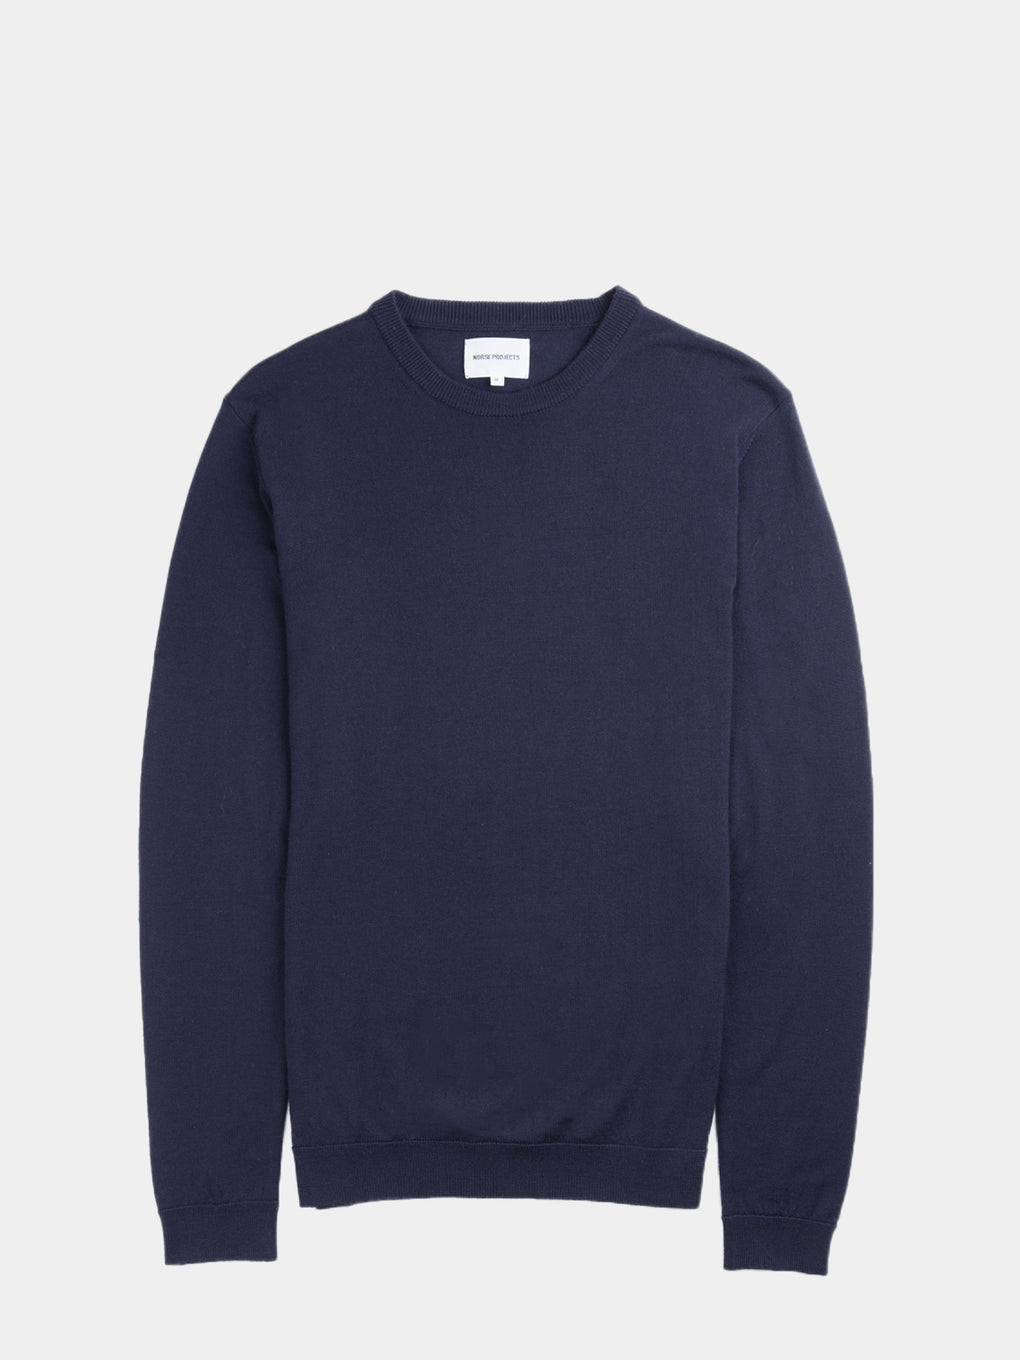 mens lightweight Italian merino knit sweater for warm weather  - navy - Norse projects